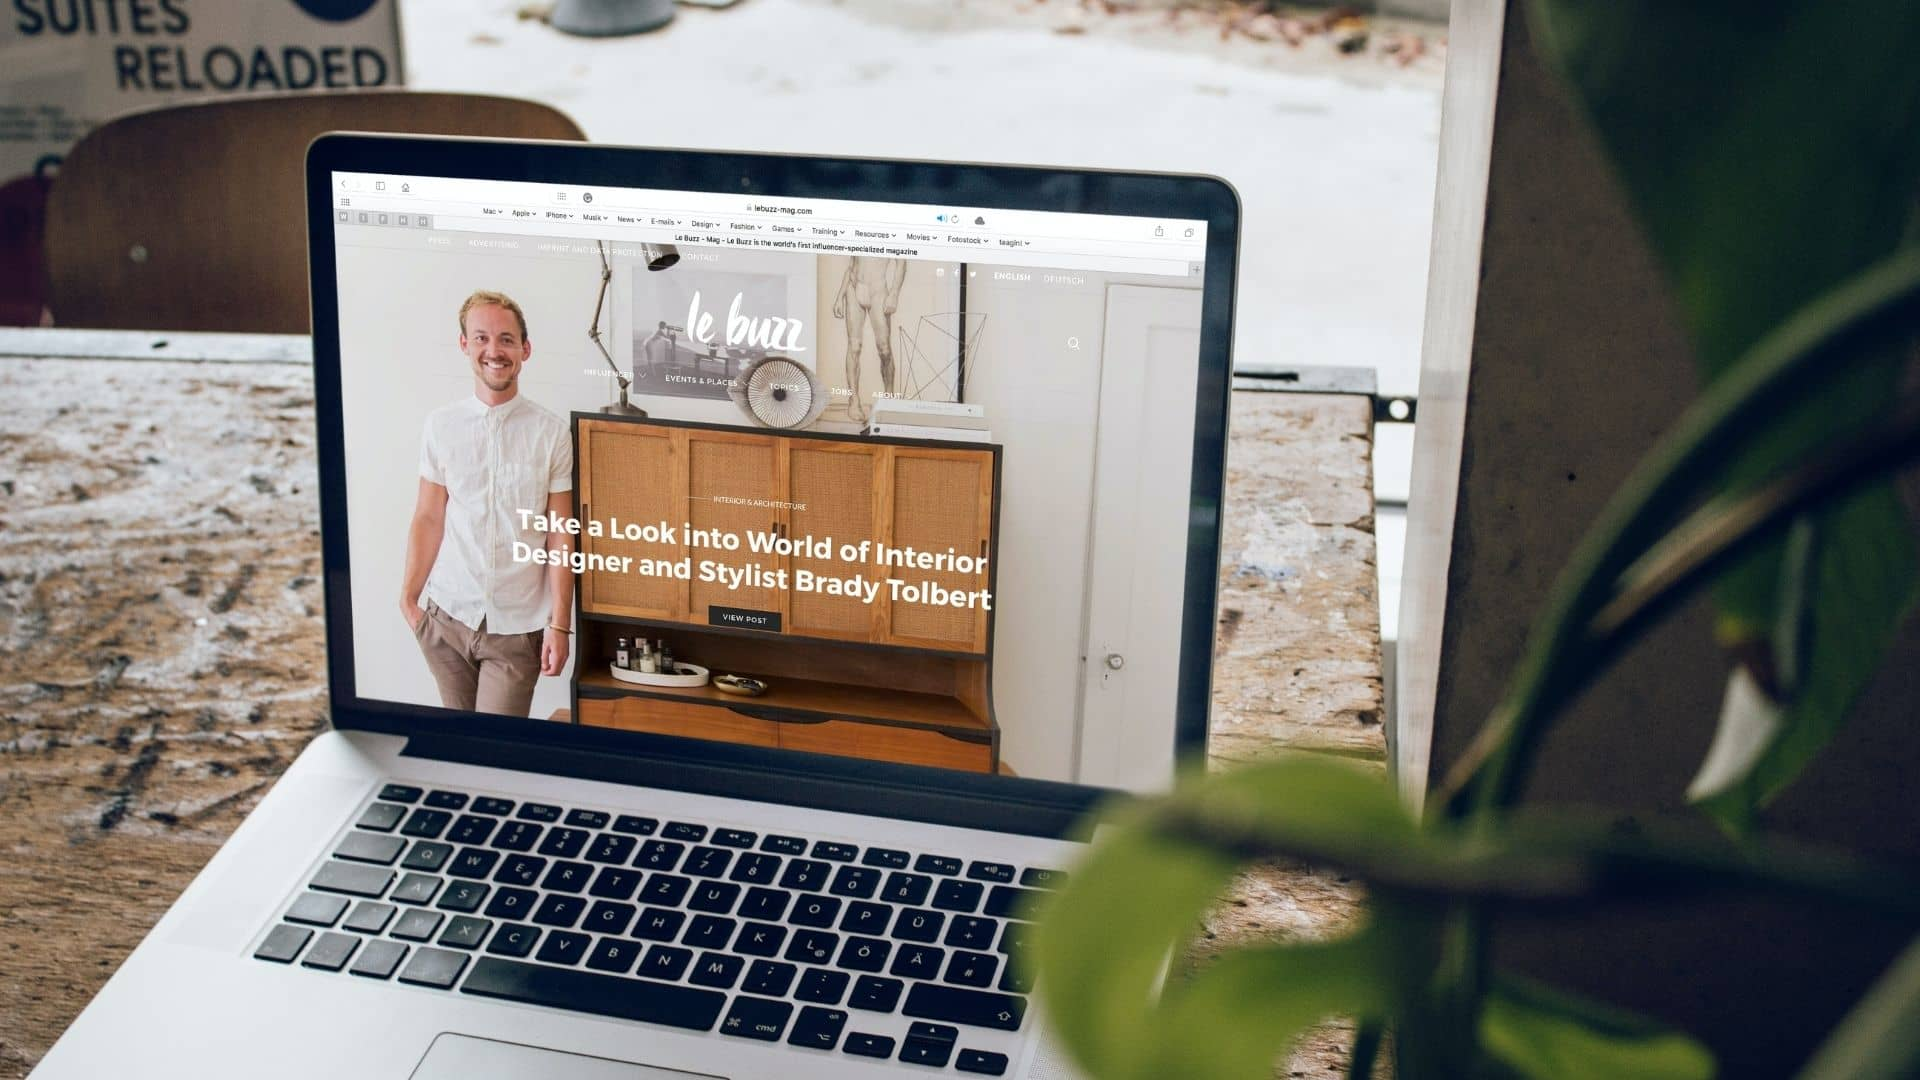 When is it Time for a Website Refresh?, website refresh, website redesign, Search Engine Optimization, Search Engine Optimization for businesses, Search Engine Optimization for small businesses